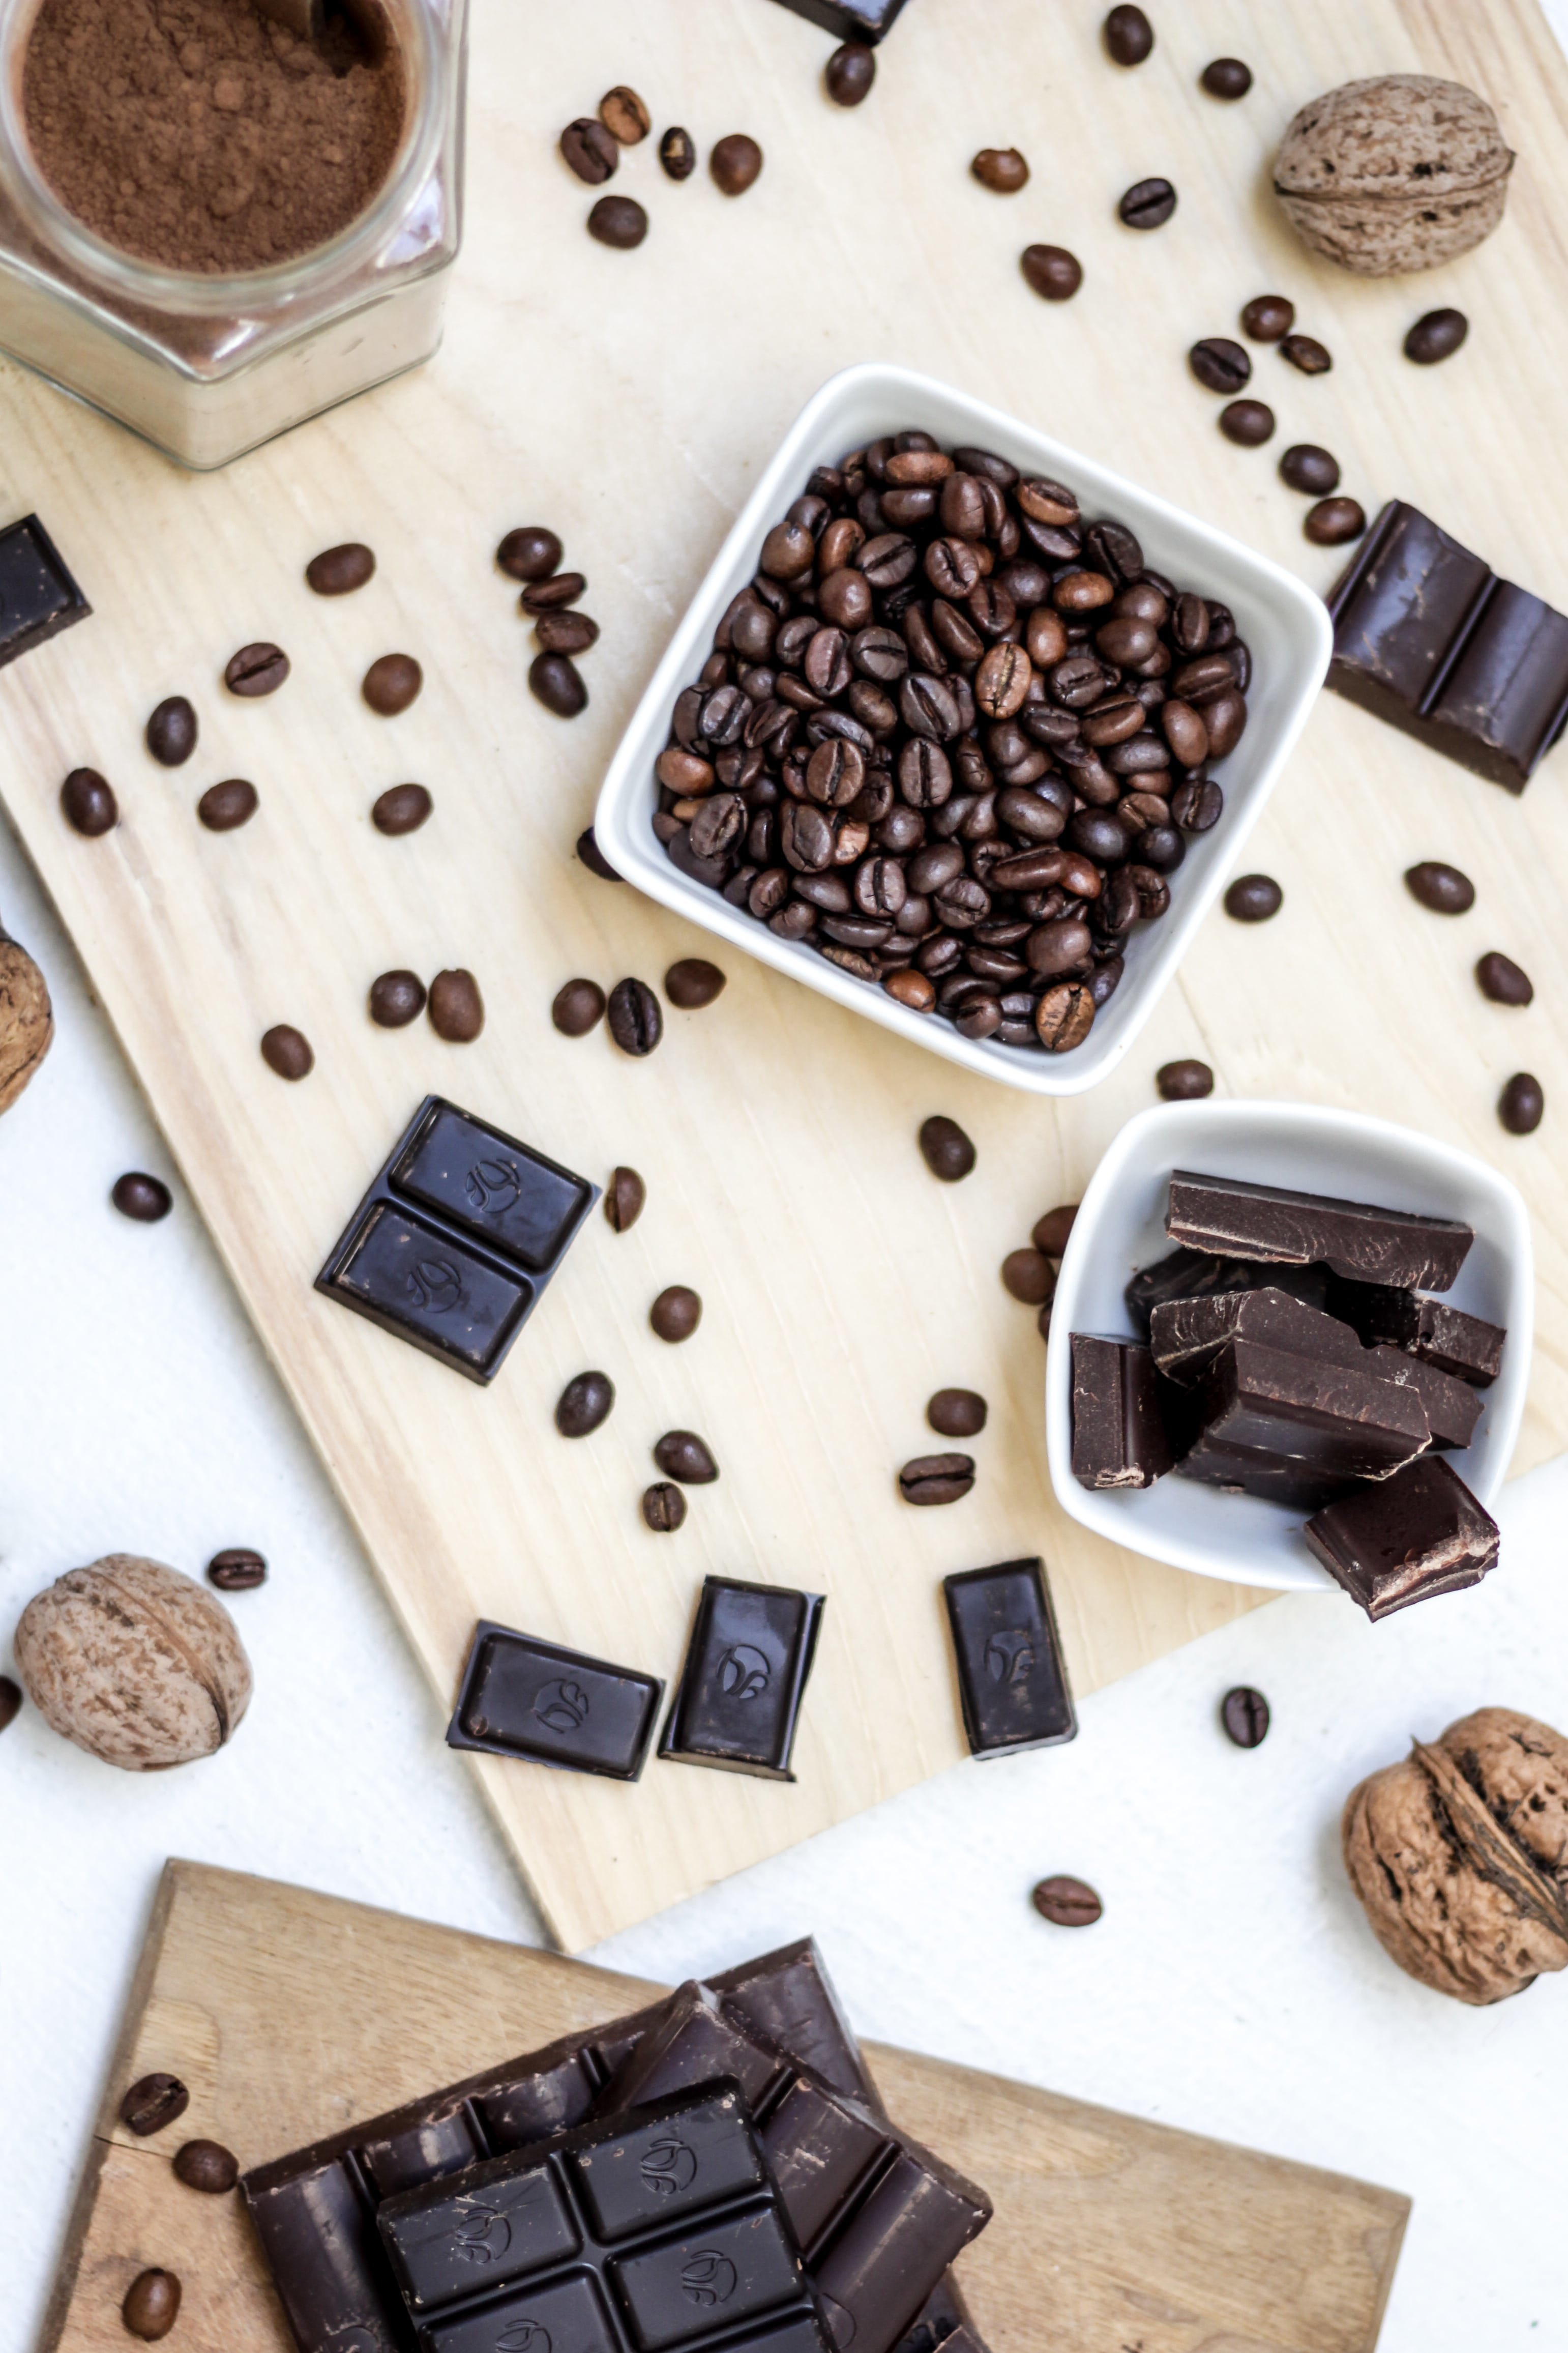 Life With Isabelle | Dark chocolate and cocoa beans